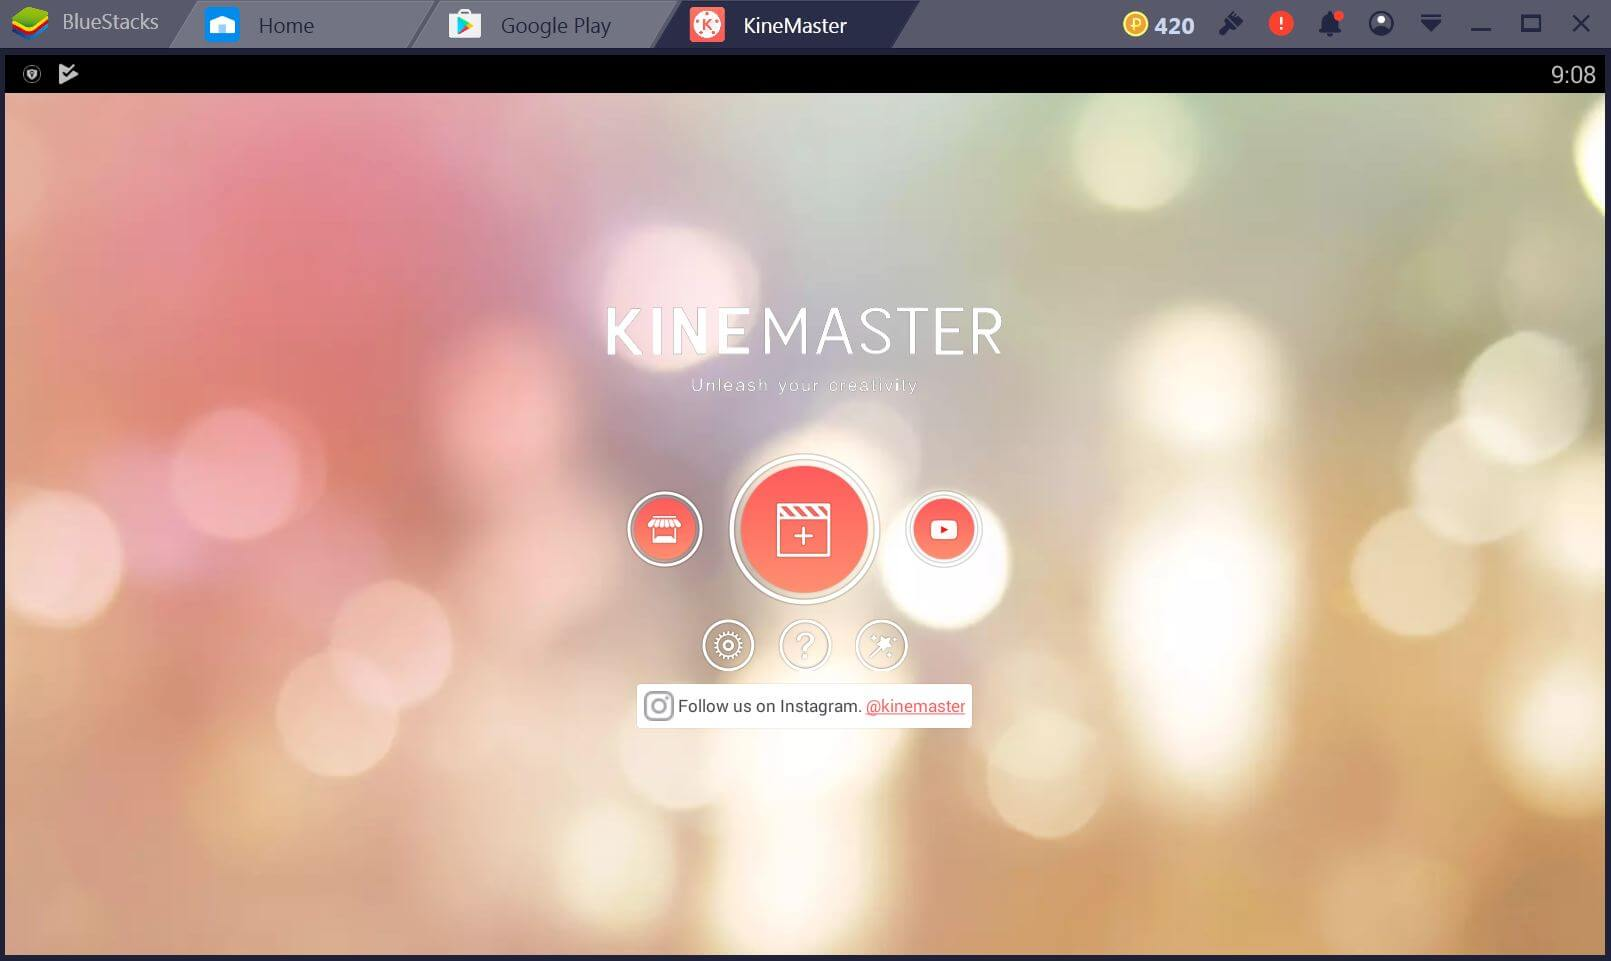 how to download kinemaster for pc without bluestacks